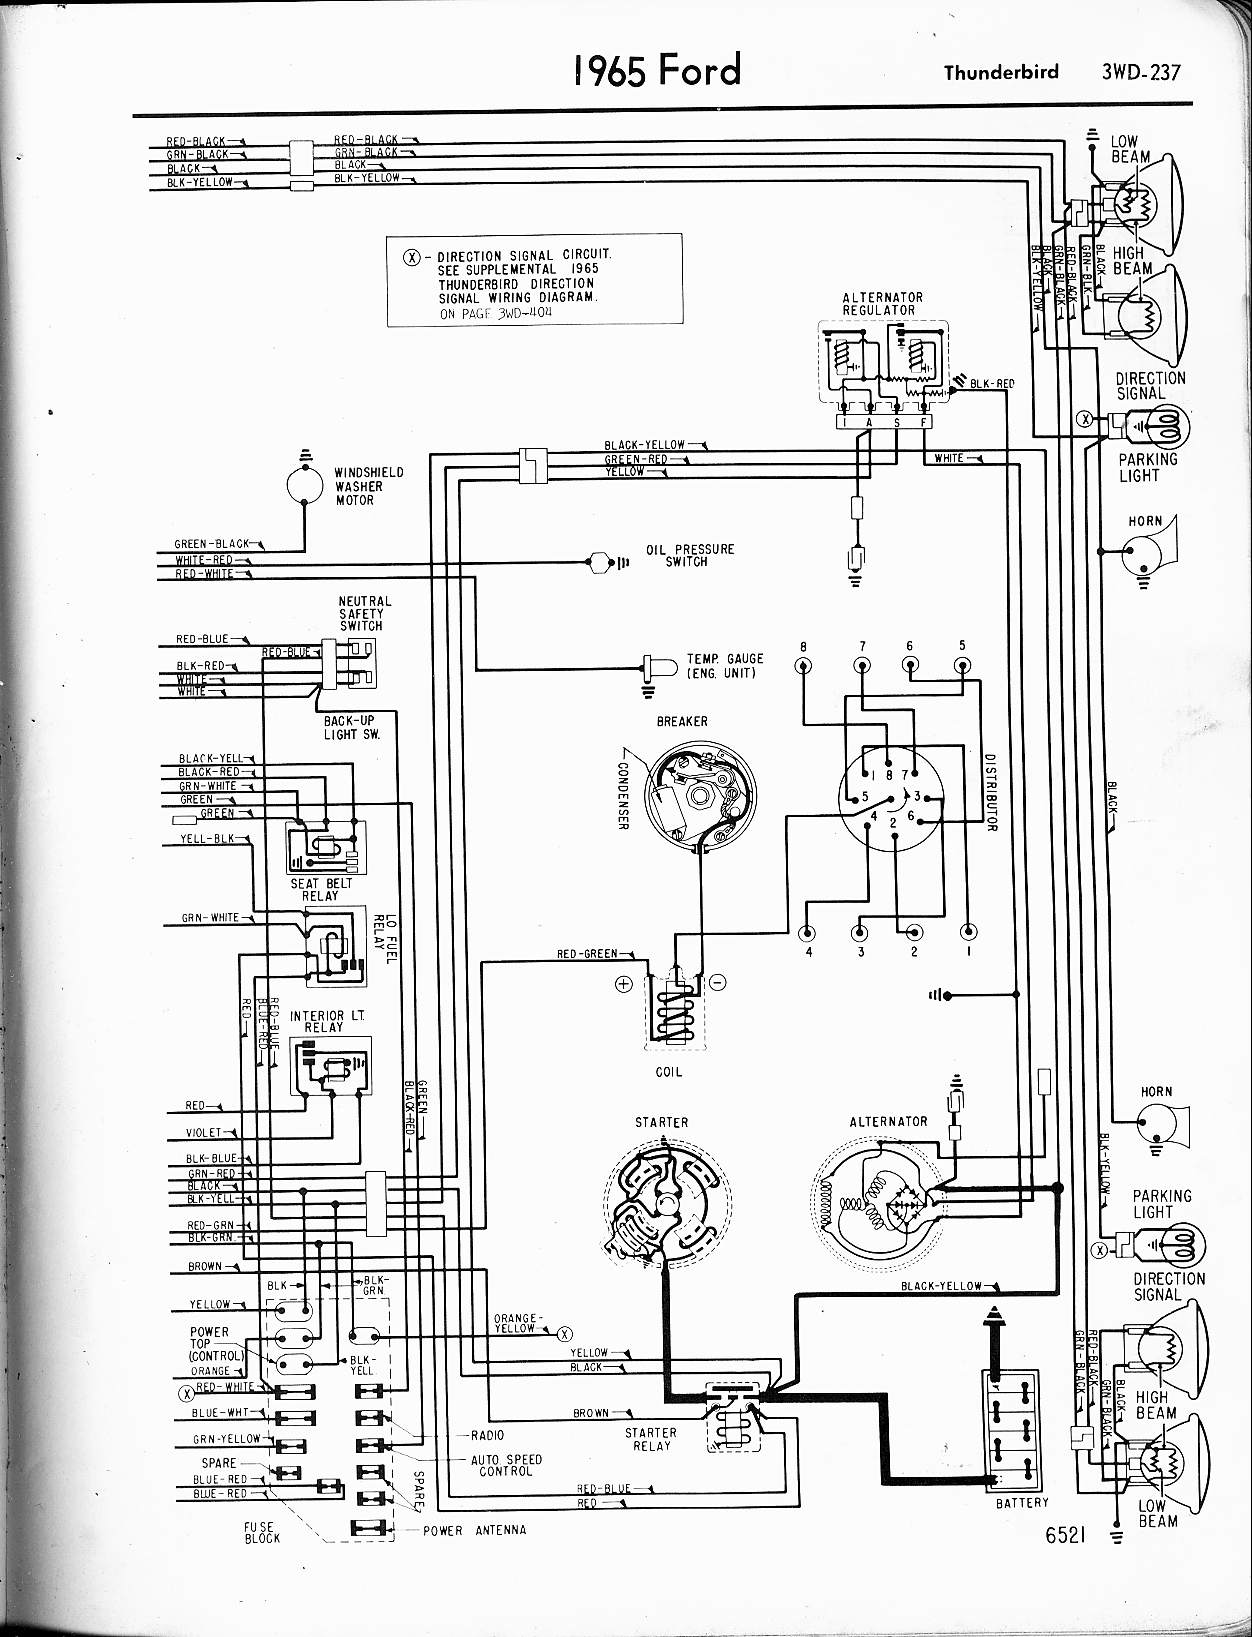 57 65 ford wiring diagrams rh oldcarmanualproject com 1970 Bronco Wiring Diagram 1970 Corvette Wiring Diagram